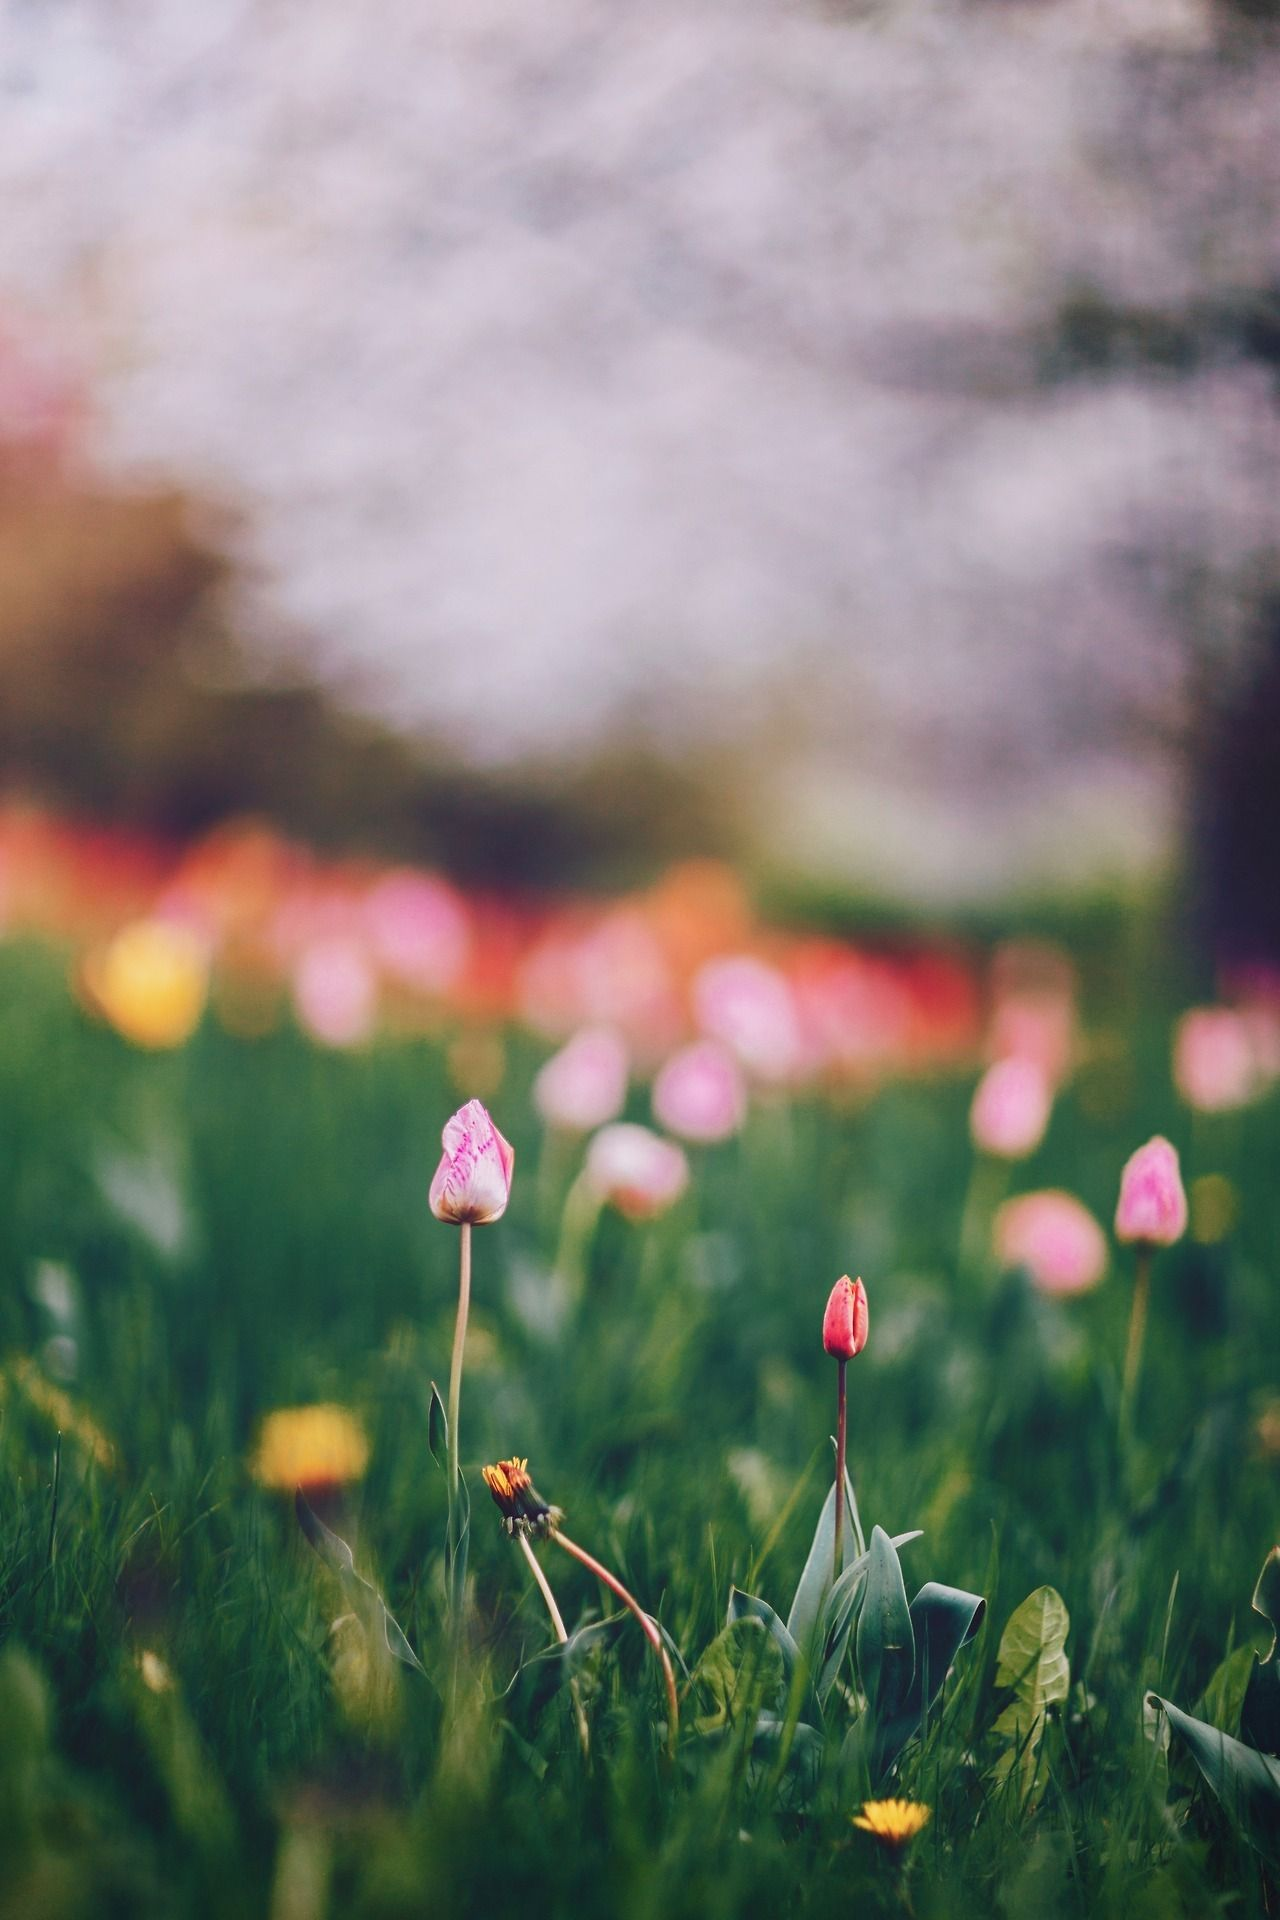 Blooming wishes happy birthday, dear Cindy @petalouda5 - #(source) #berlin #garden #landscape #meolog #nature #on #photographers #photography #tulips #tumblr